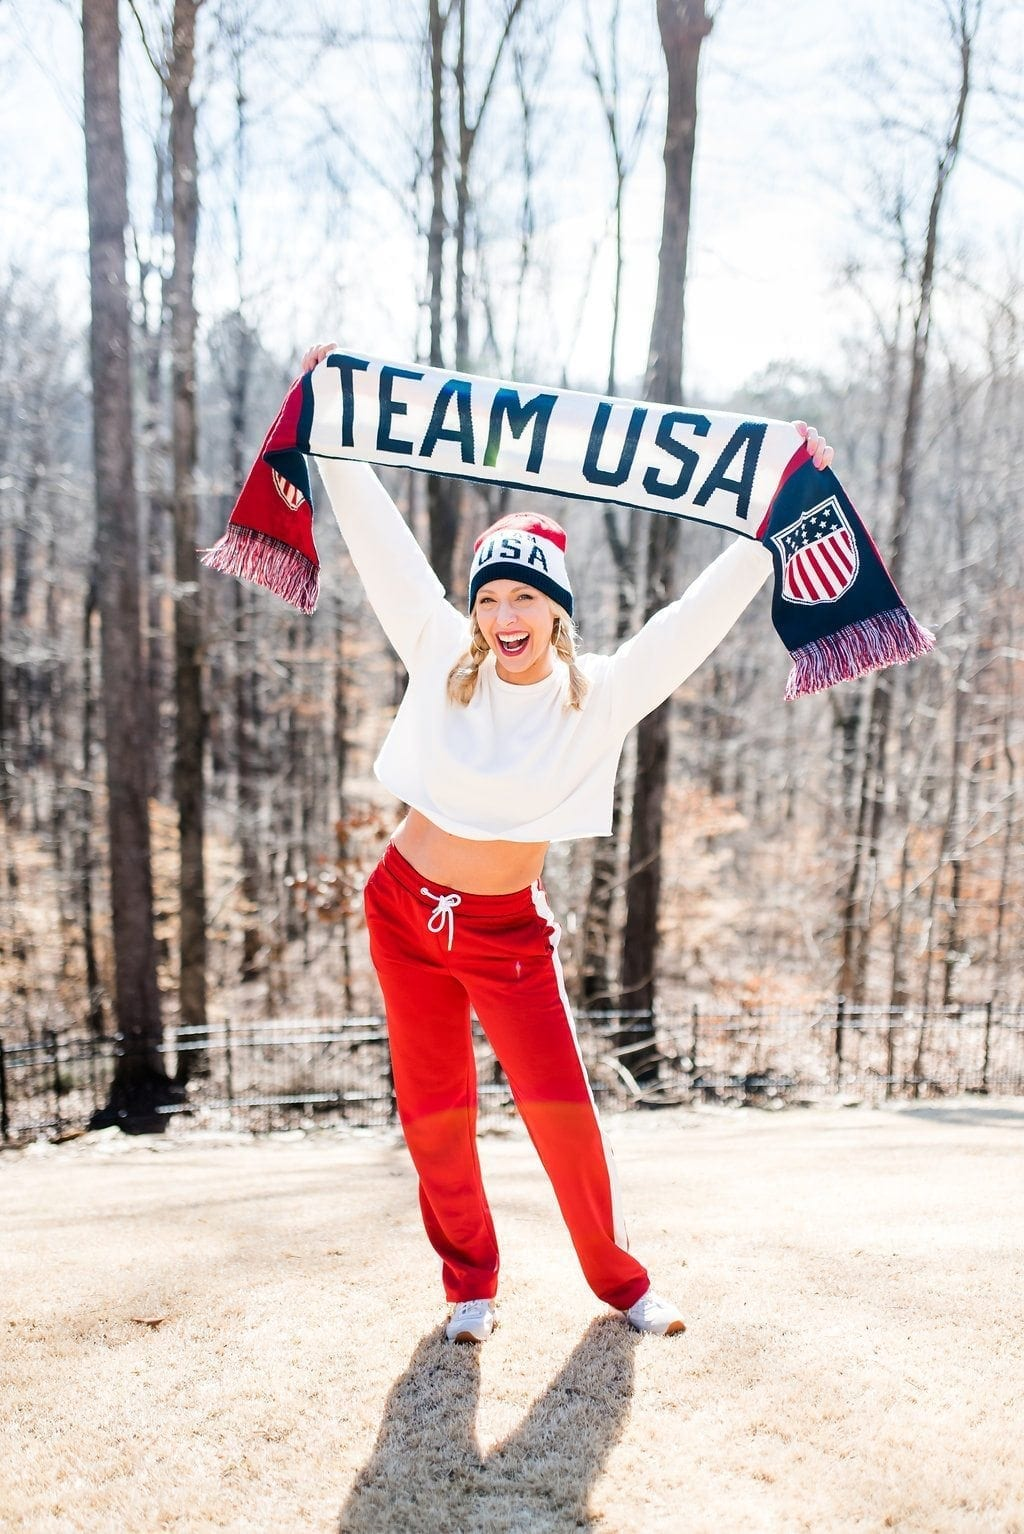 Team USA apparel for the Olympics 2018.